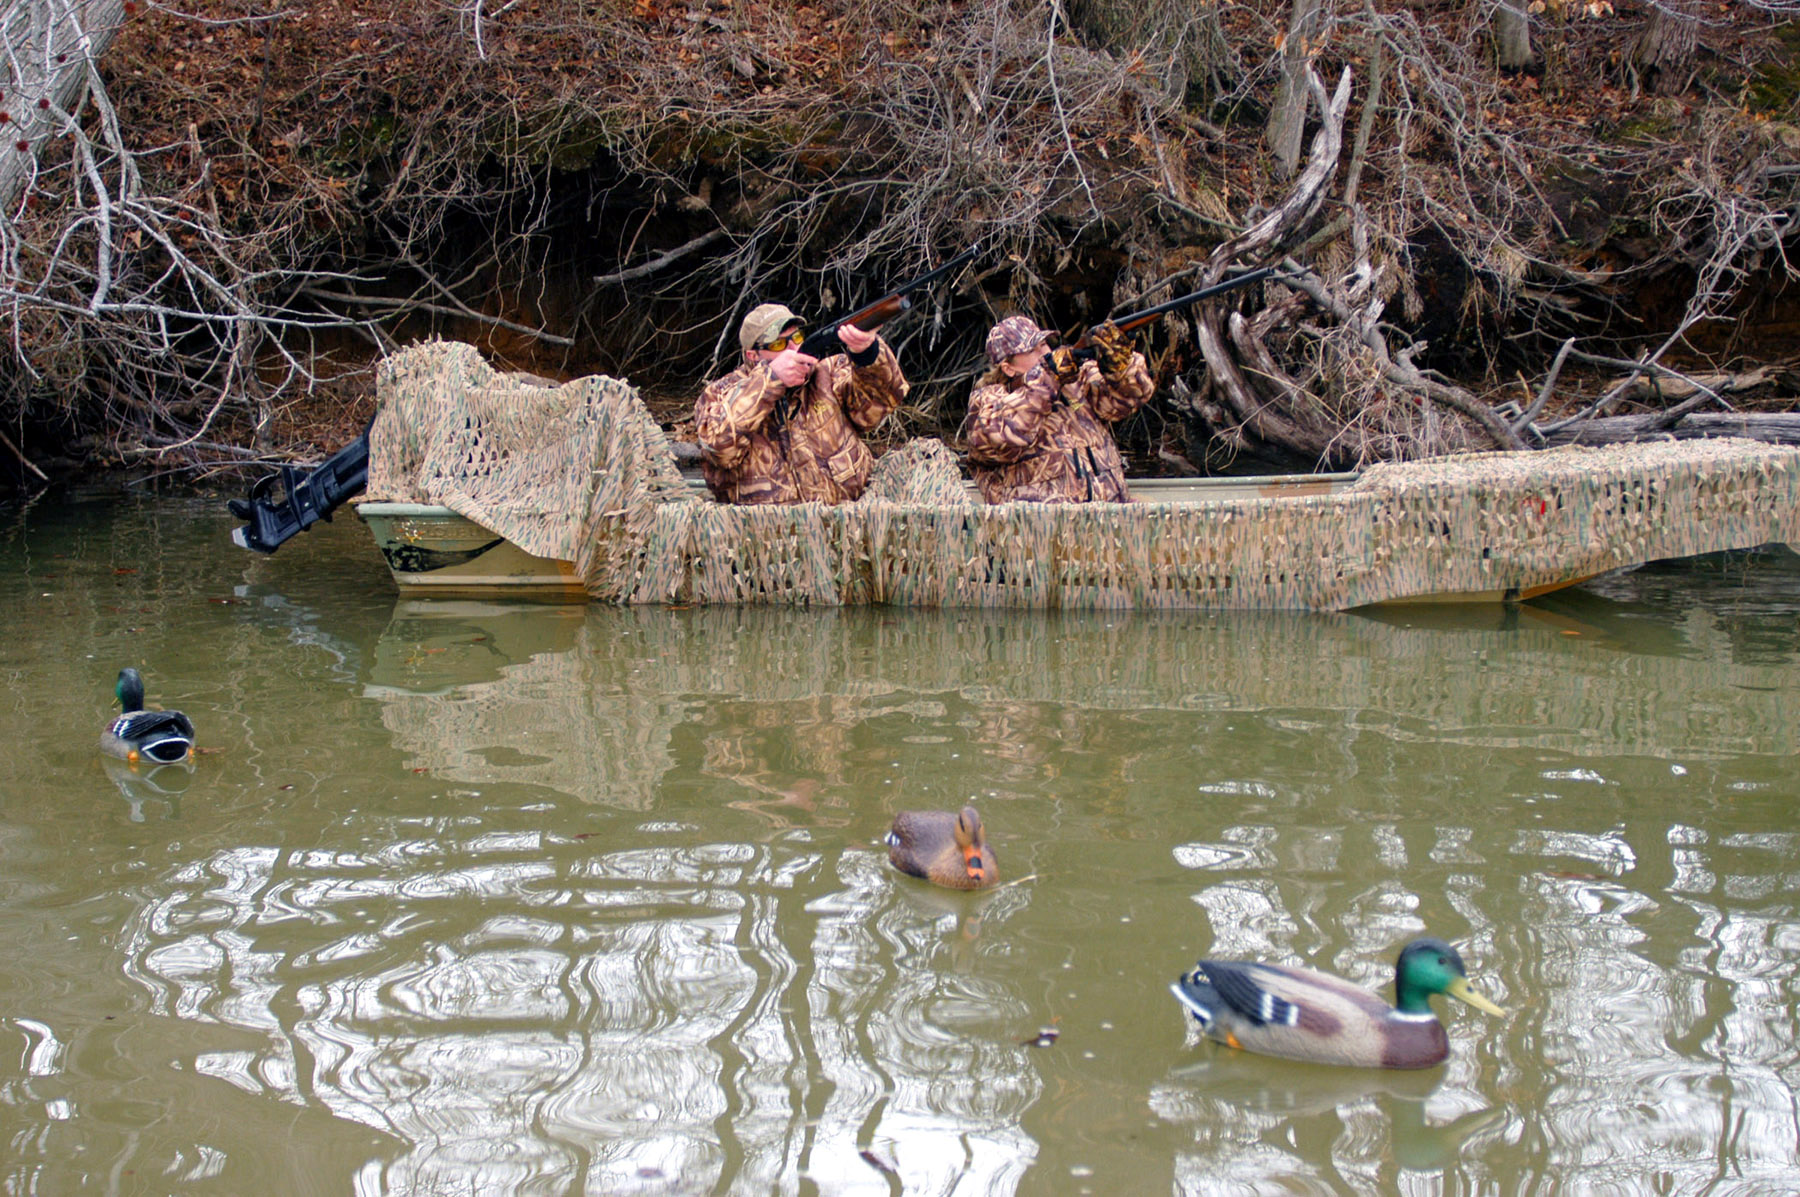 hard frame blinds name side iawaterfowlers welded image duck views blind click larger version attachment boat size for